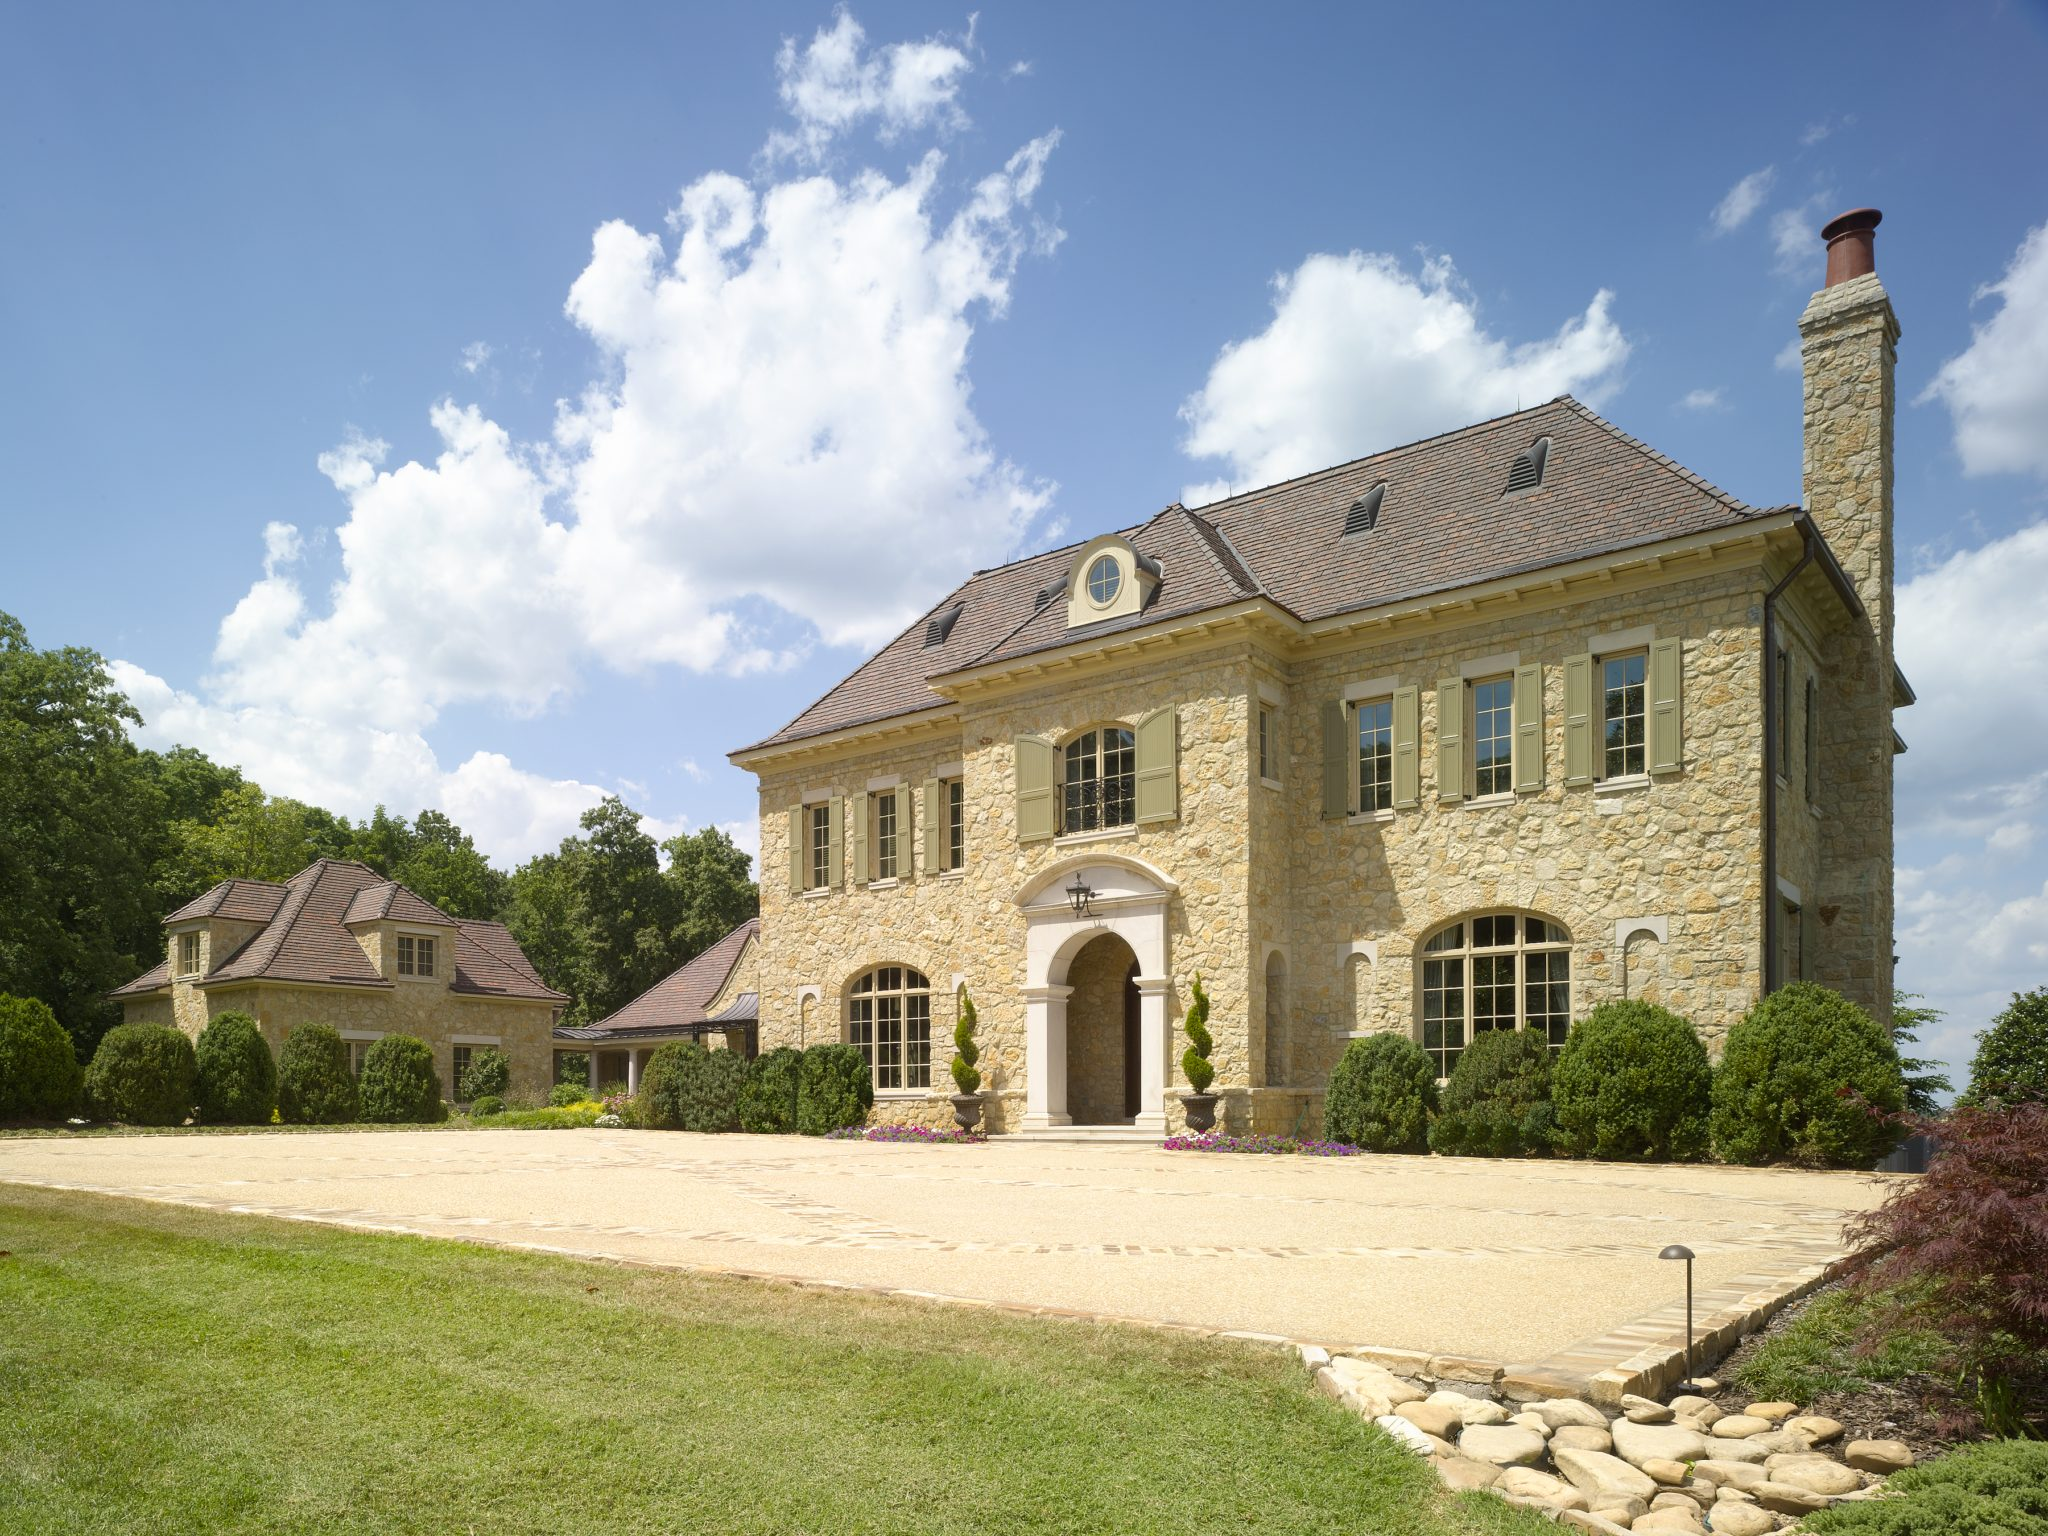 Tennessee River Residence by Harrison Design